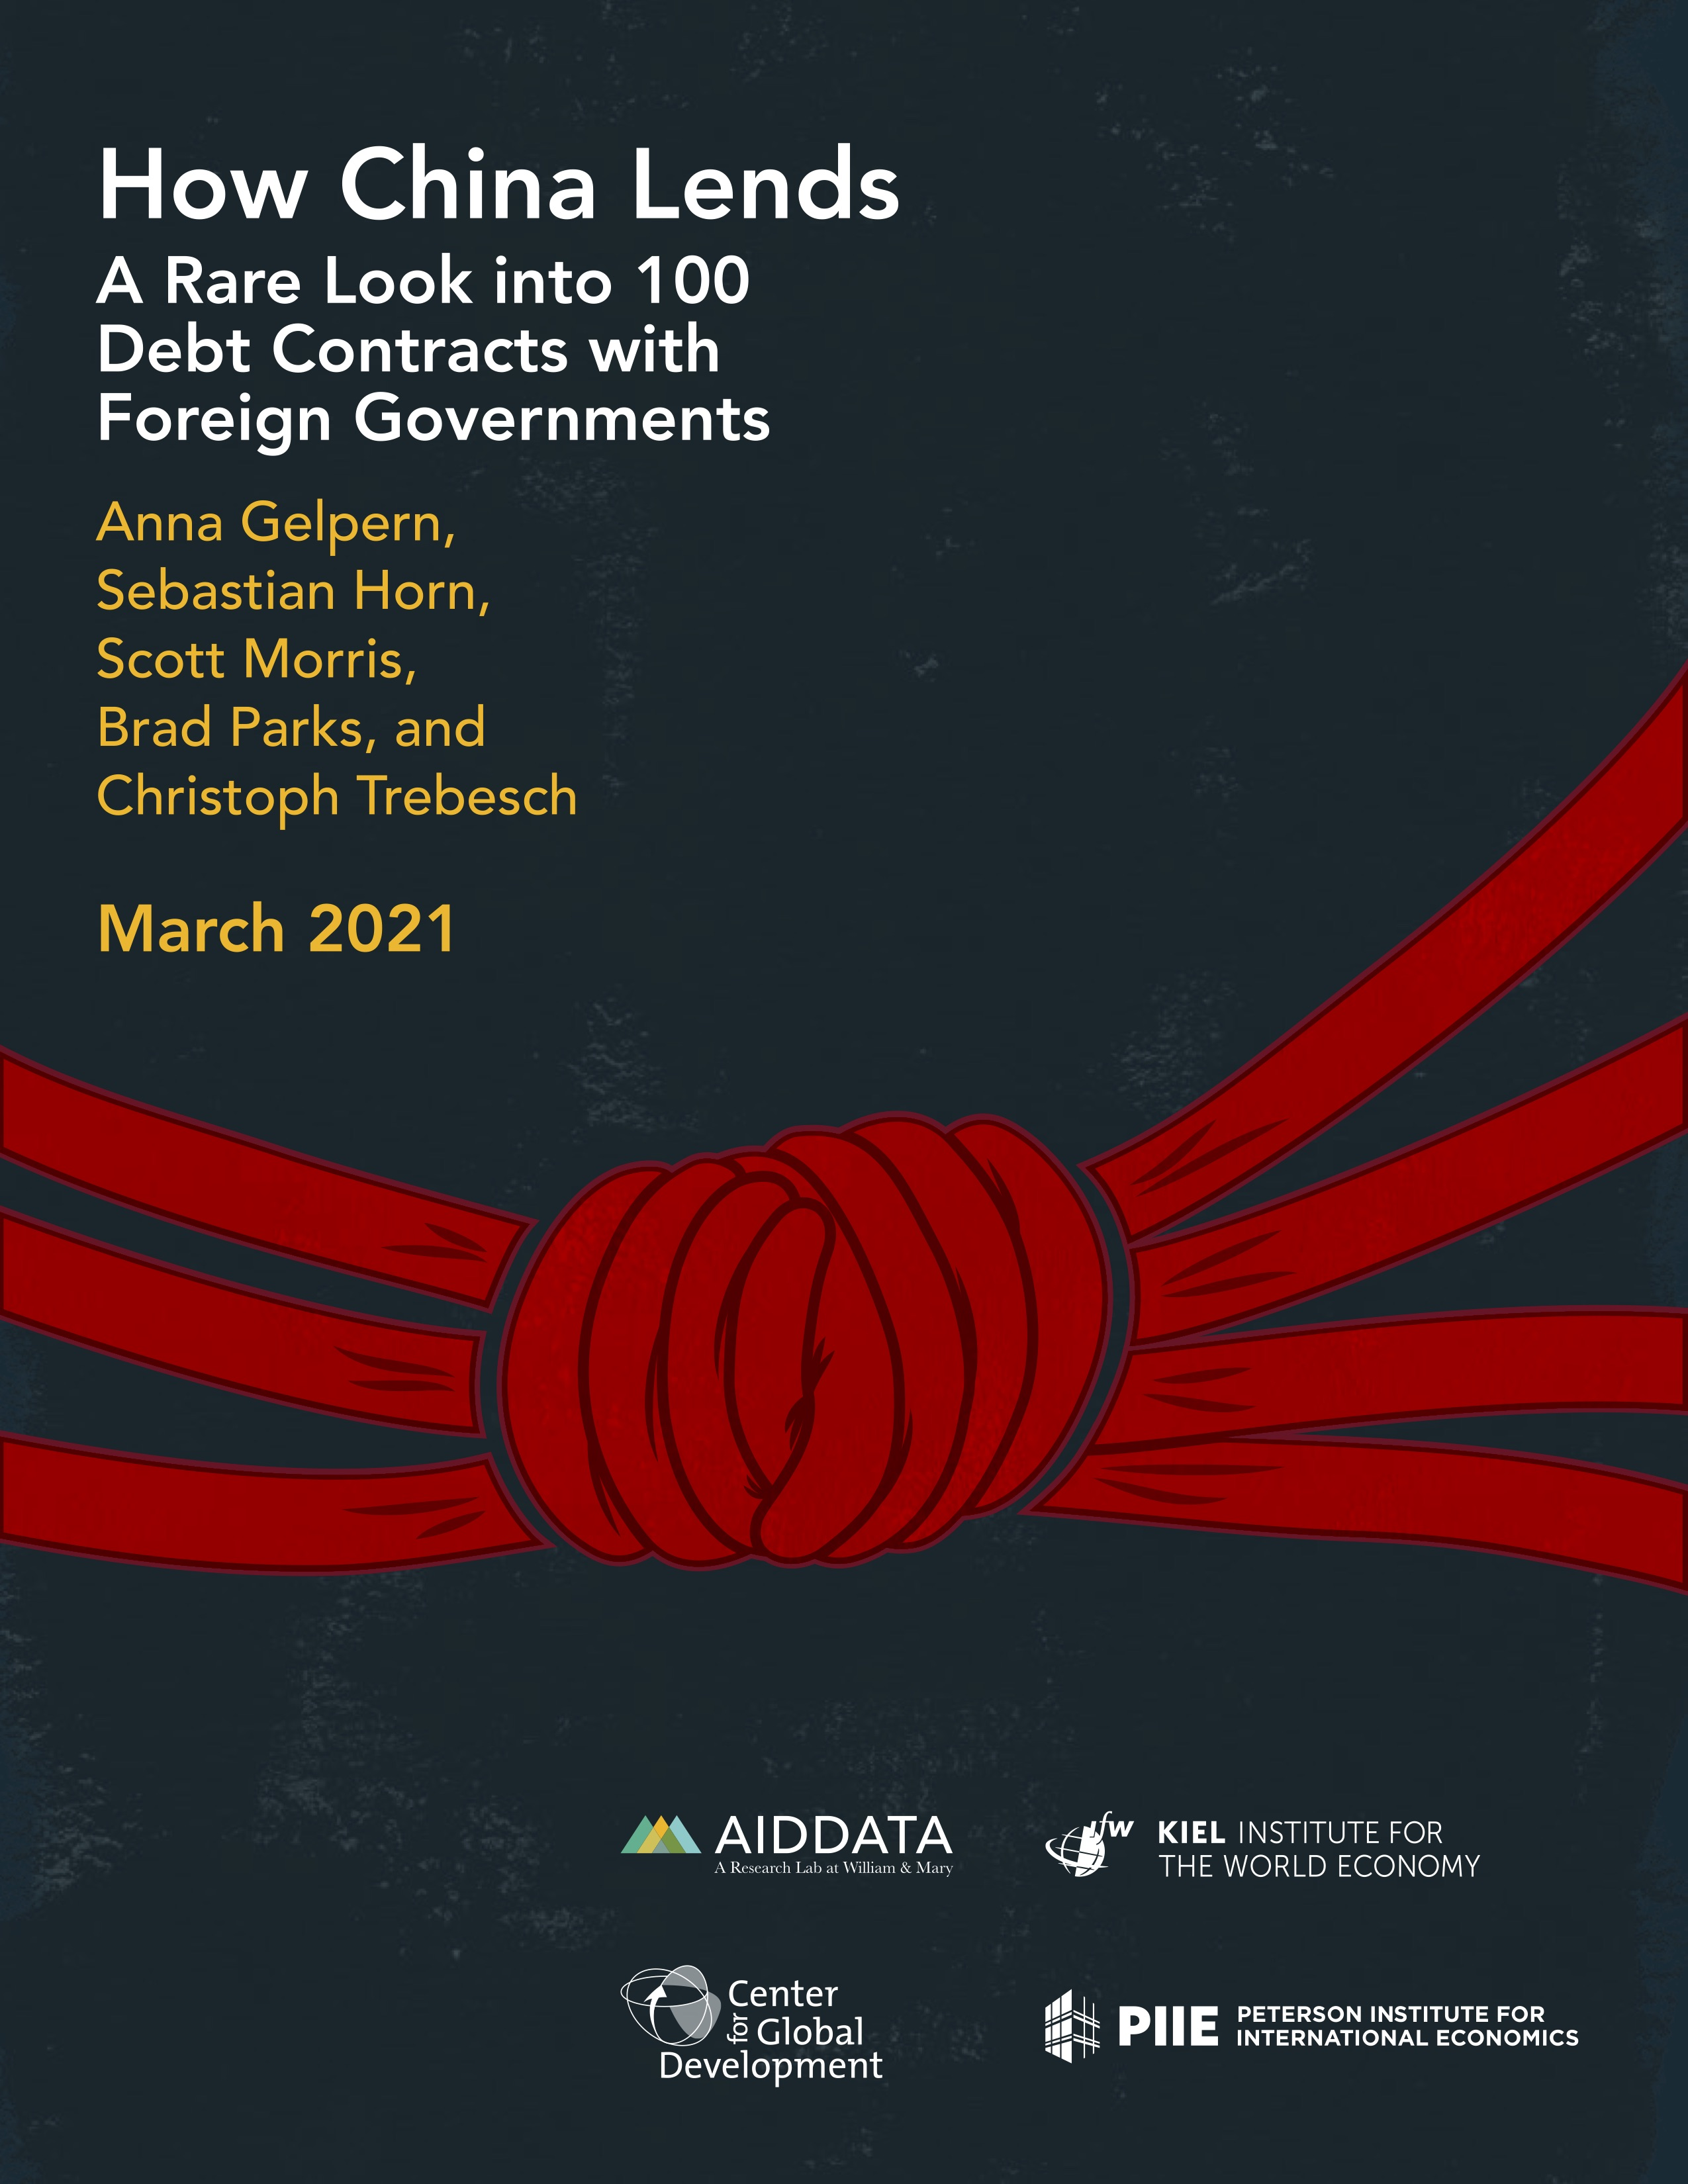 How China Lends: A Rare Look into 100 Debt Contracts with Foreign Governments